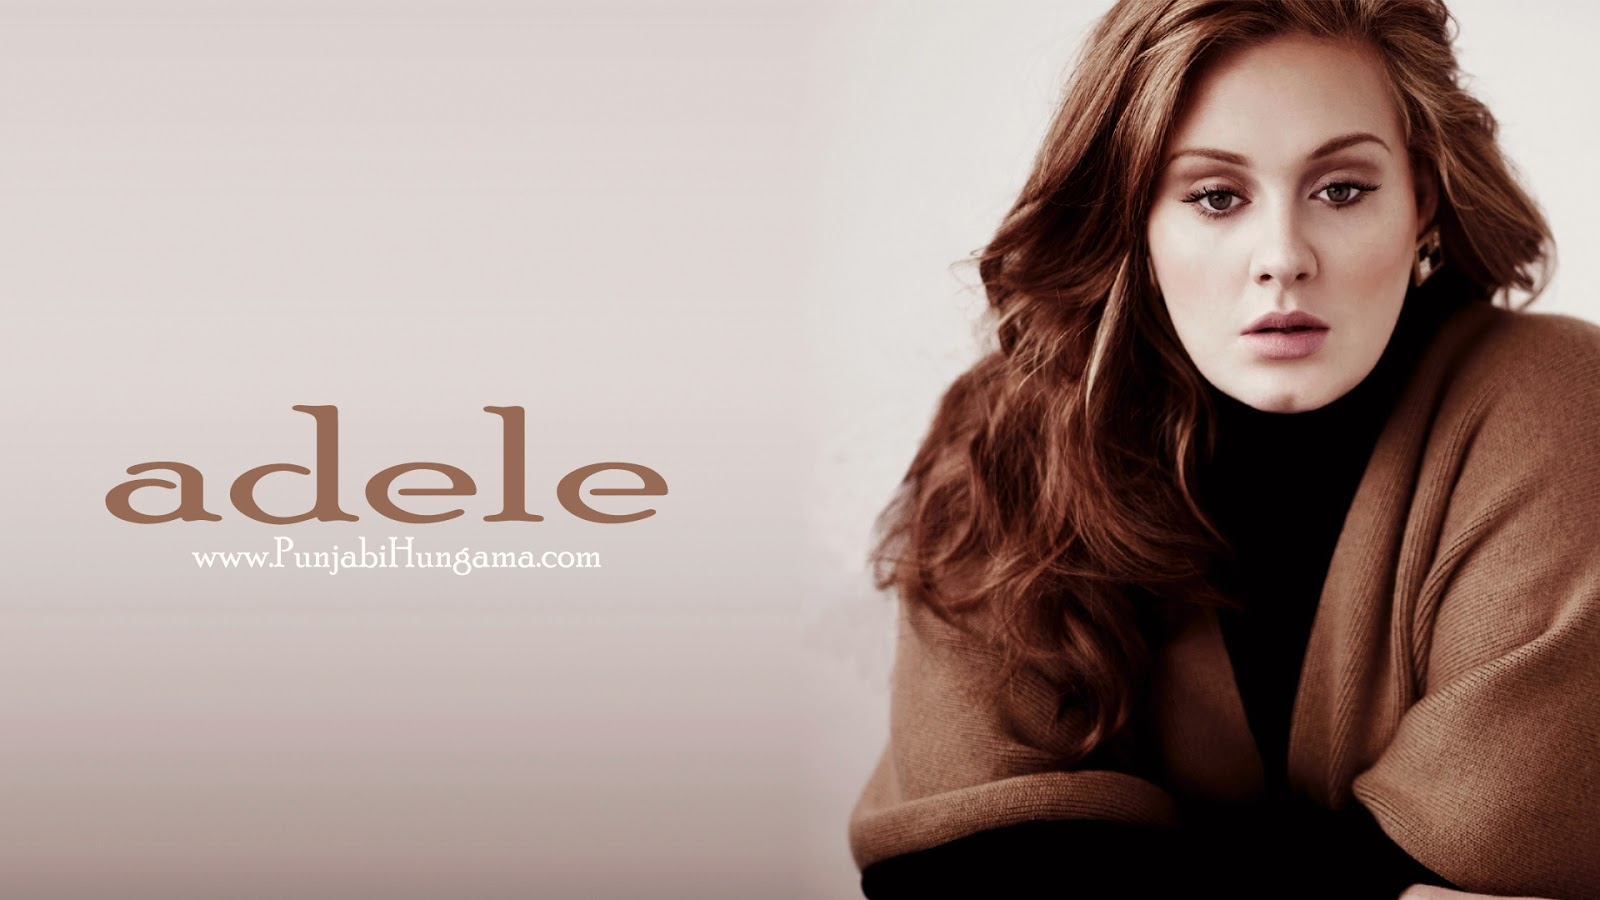 Like you covers wallpapers new iphone wallpaper adele wallpaper singer